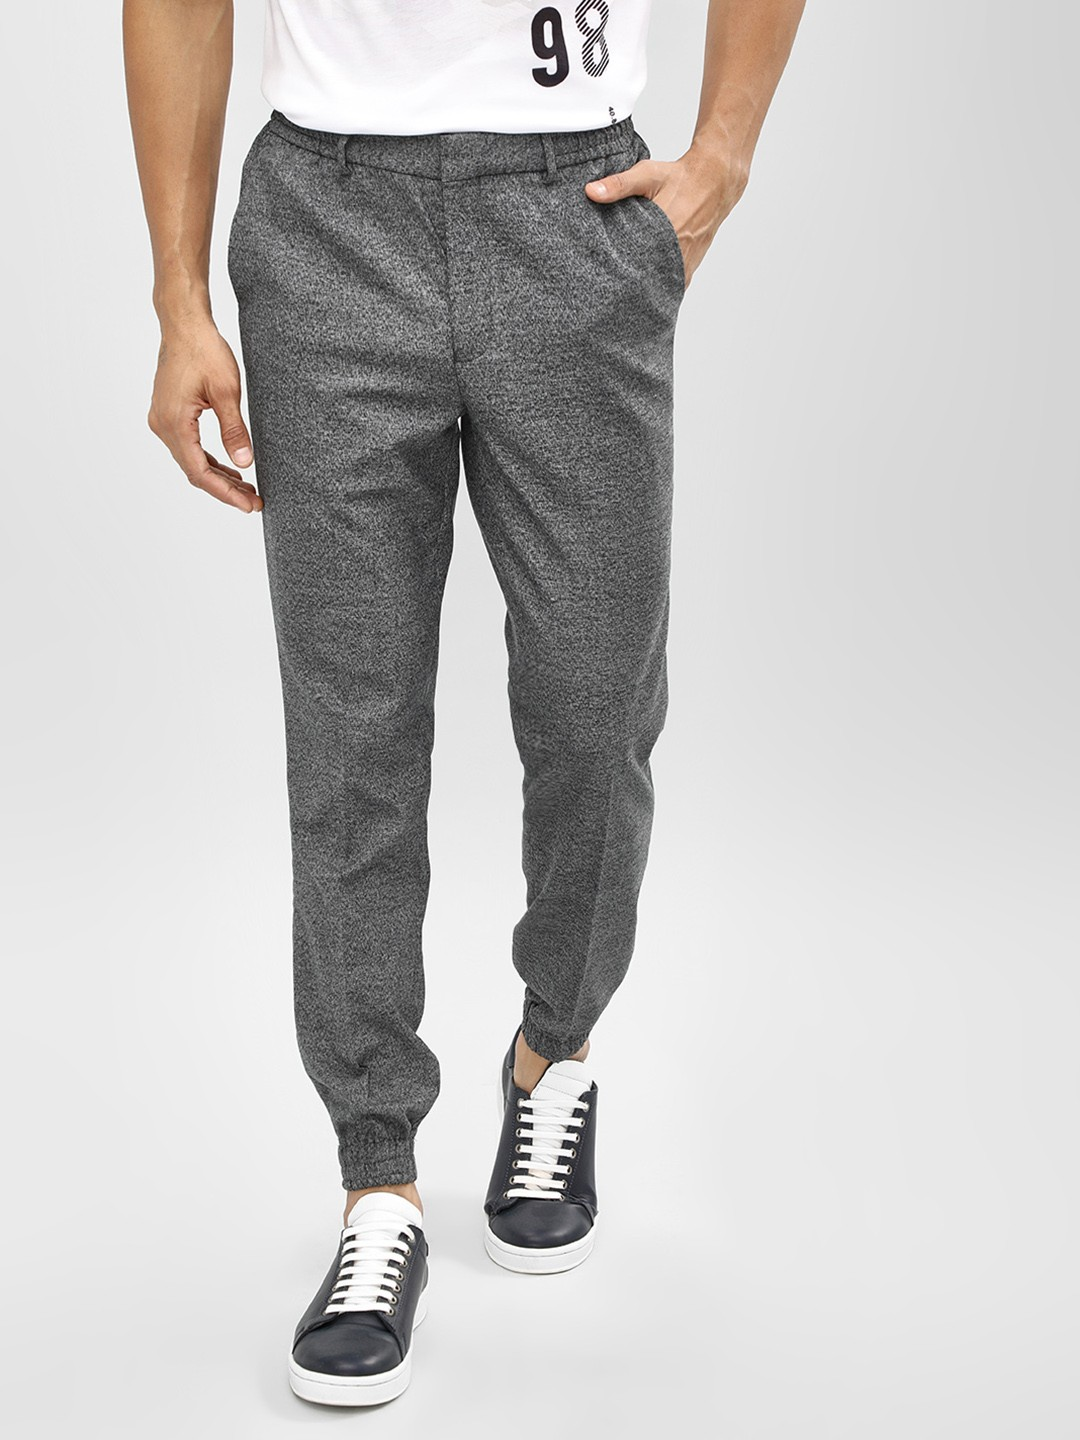 New Look Grey Elasticated Waist Cuffed Hem Joggers 1